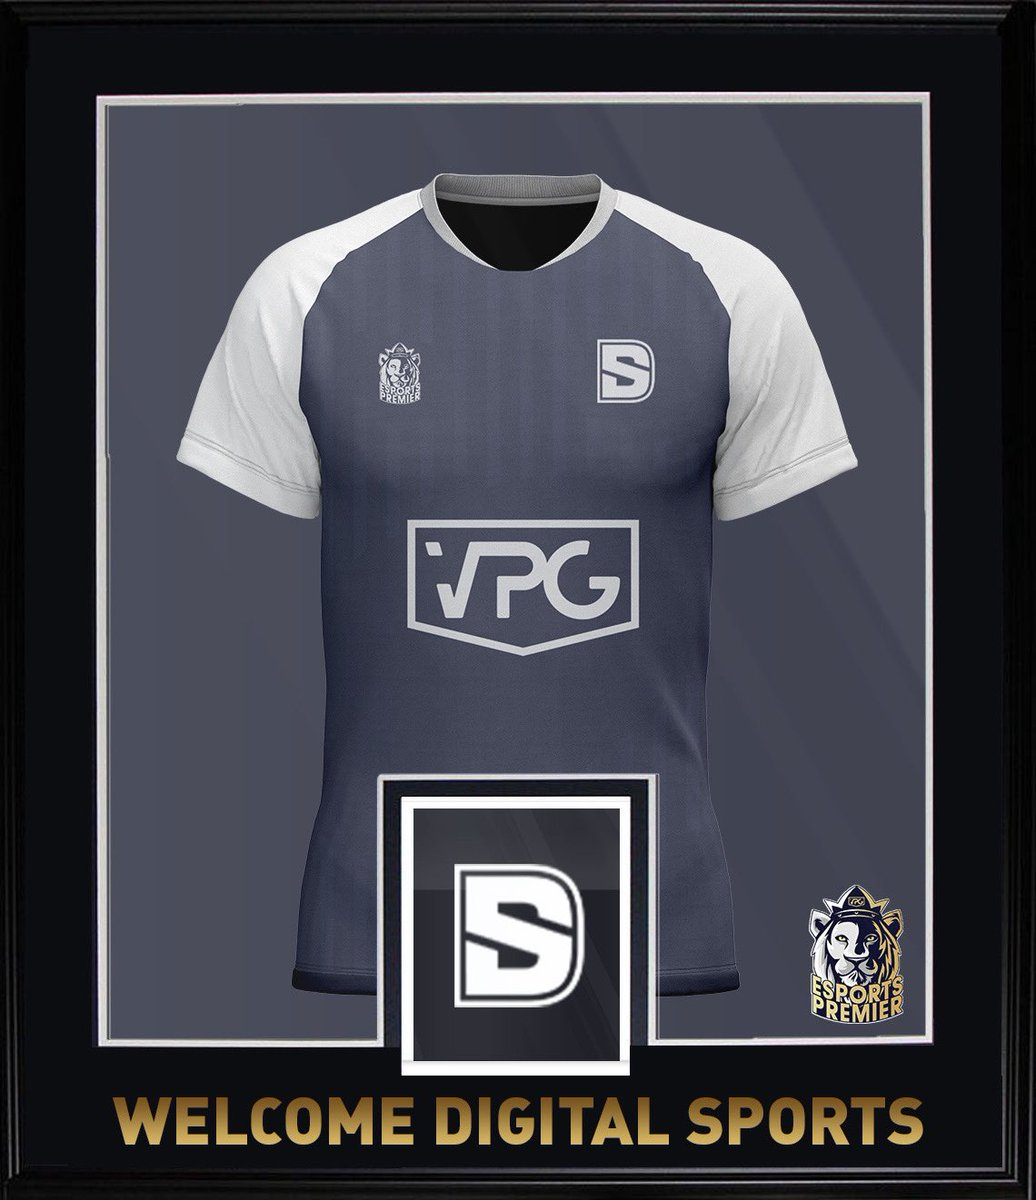 🤩 Welcome @DIGITALSportsGG into the @VPGPremier !   🌍 Nationality: 🇩🇪   🏆 Finished 7th last season, a very strong side. New faces to join and improve the squad. Will definitely be title contenders!   #Digital #FIFA21 #ProClubs #VPG https://t.co/JlYoCosijq